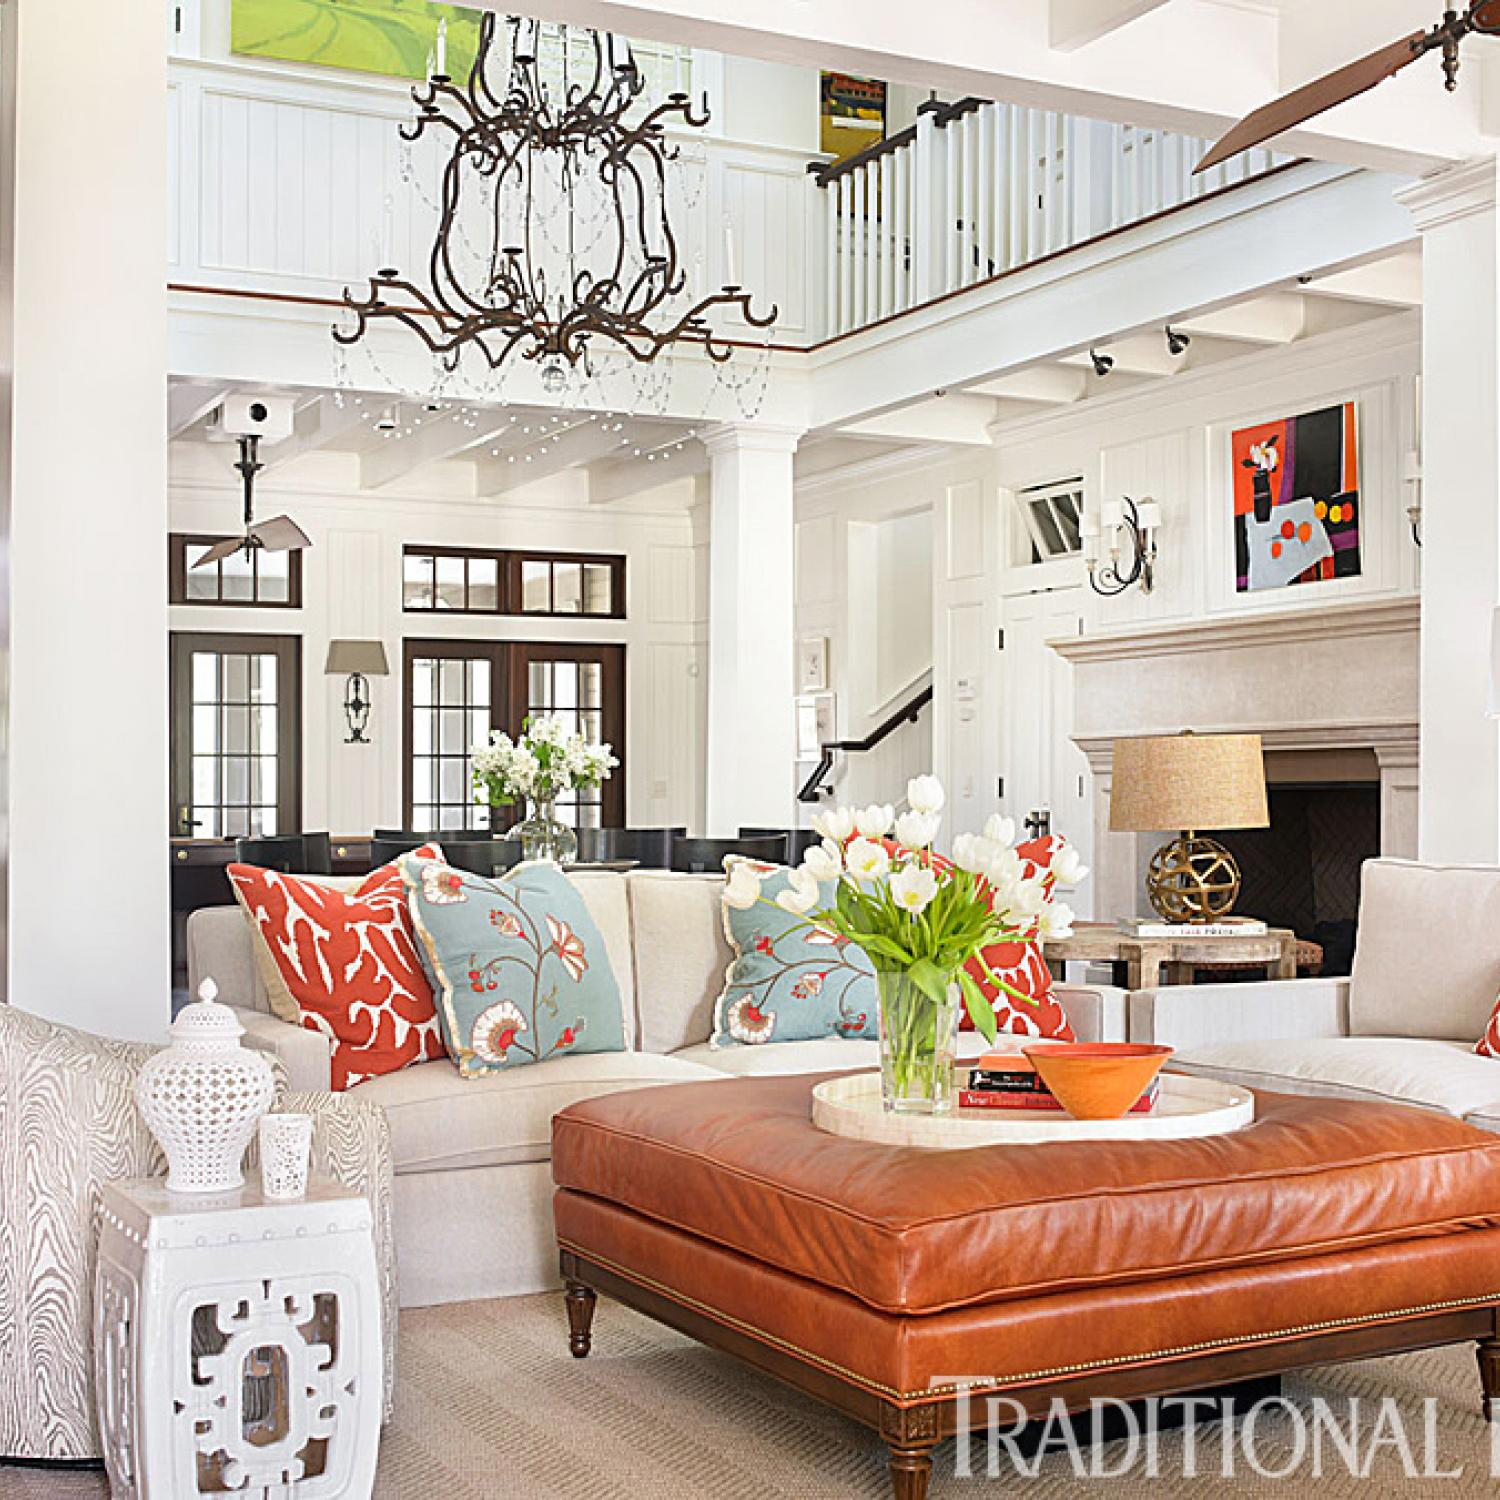 Traditional Home Interiors: Traditional Interior Design